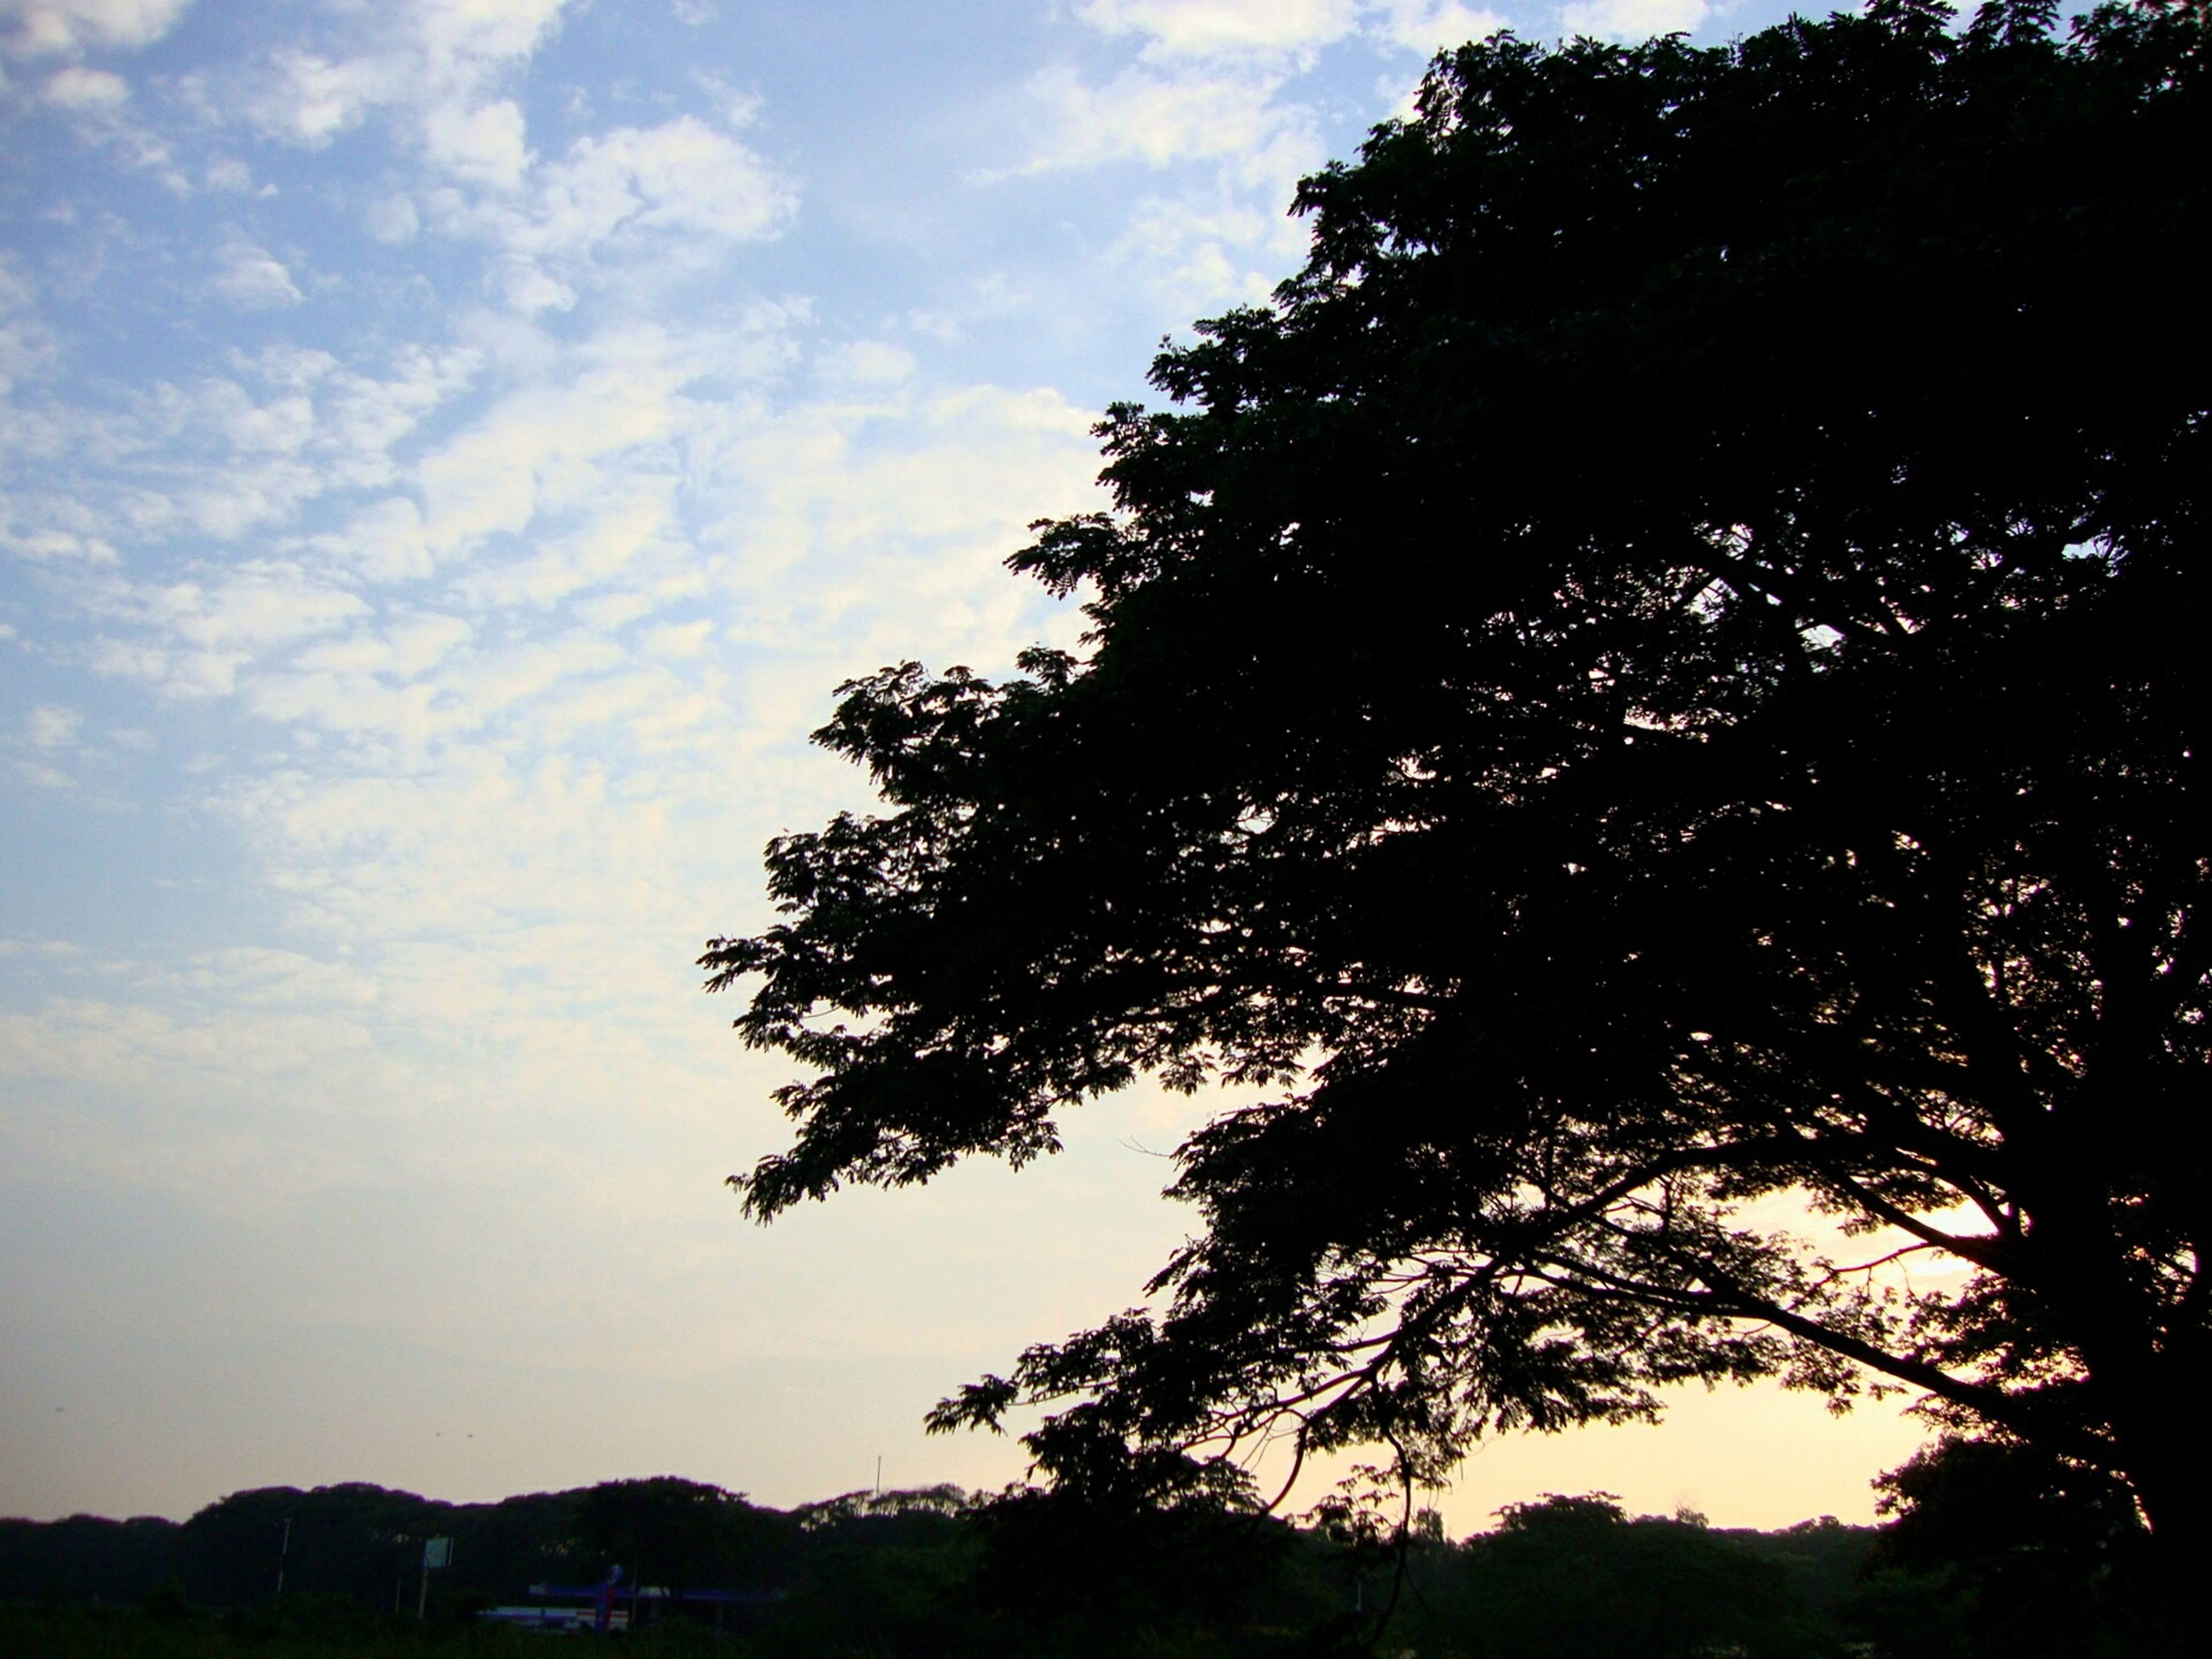 tree, silhouette, tranquility, sky, sunset, tranquil scene, beauty in nature, scenics, nature, growth, cloud - sky, landscape, idyllic, dusk, non-urban scene, cloud, outdoors, no people, low angle view, outline